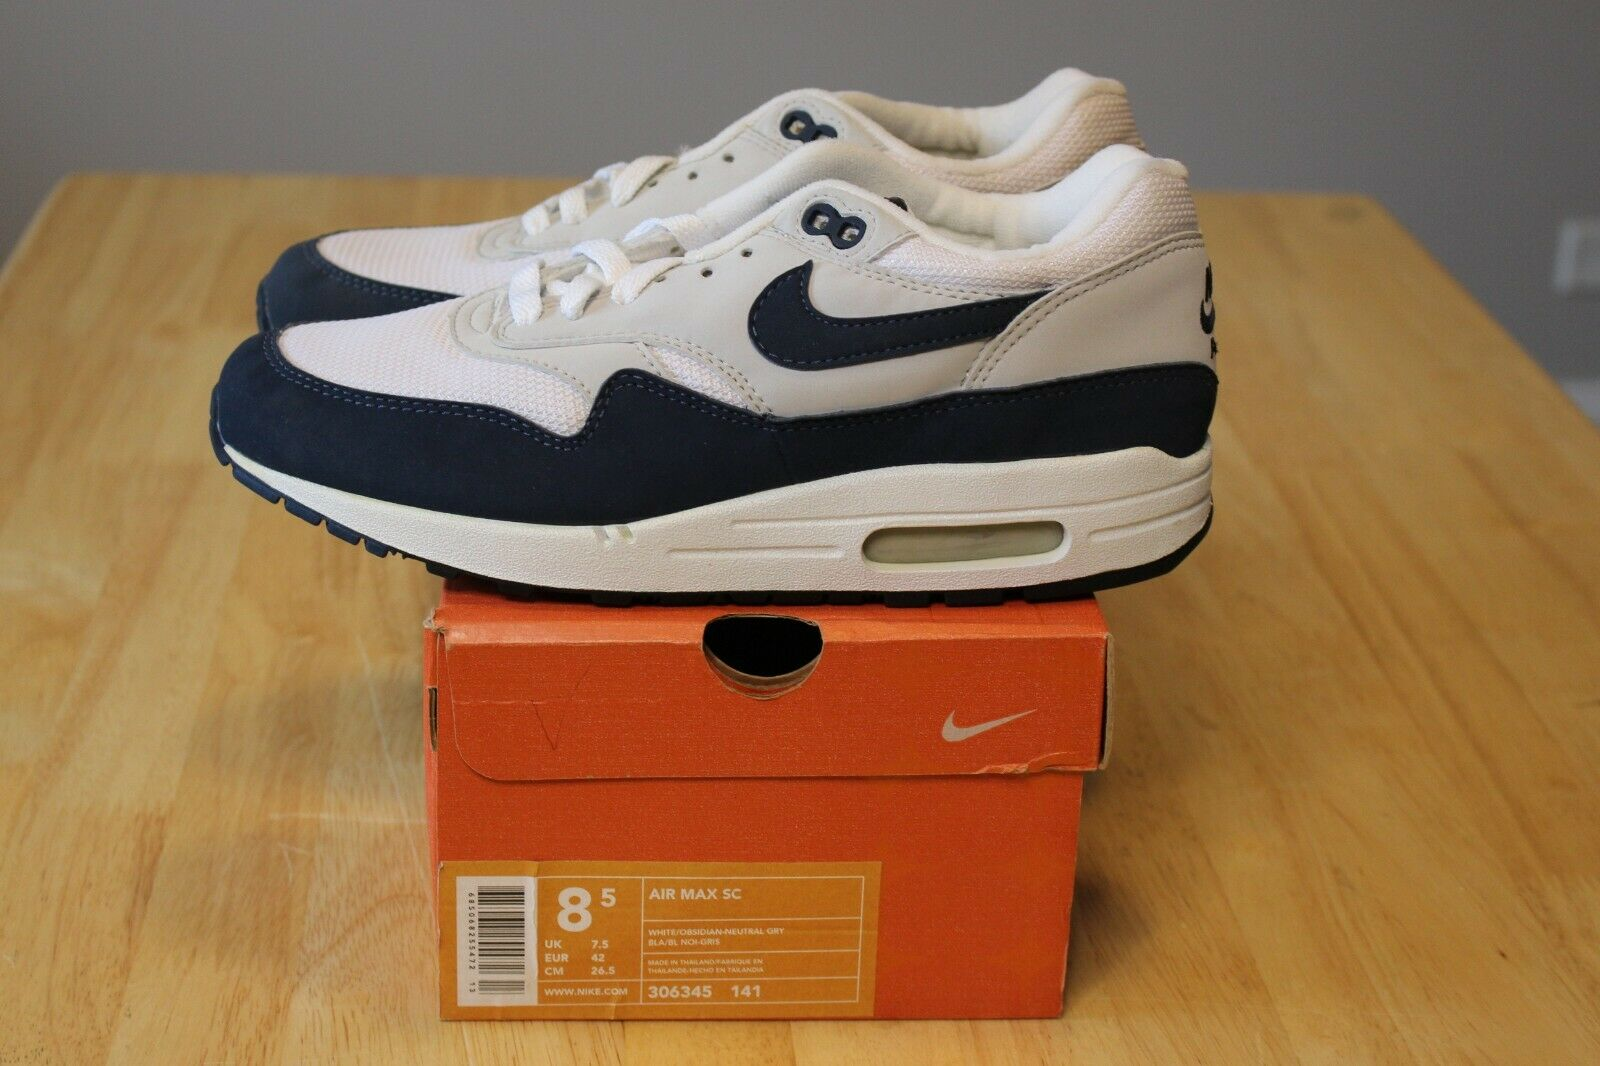 Size 8.5 - Nike Air Max 1 SC Obsidian 2003 for sale online   eBay